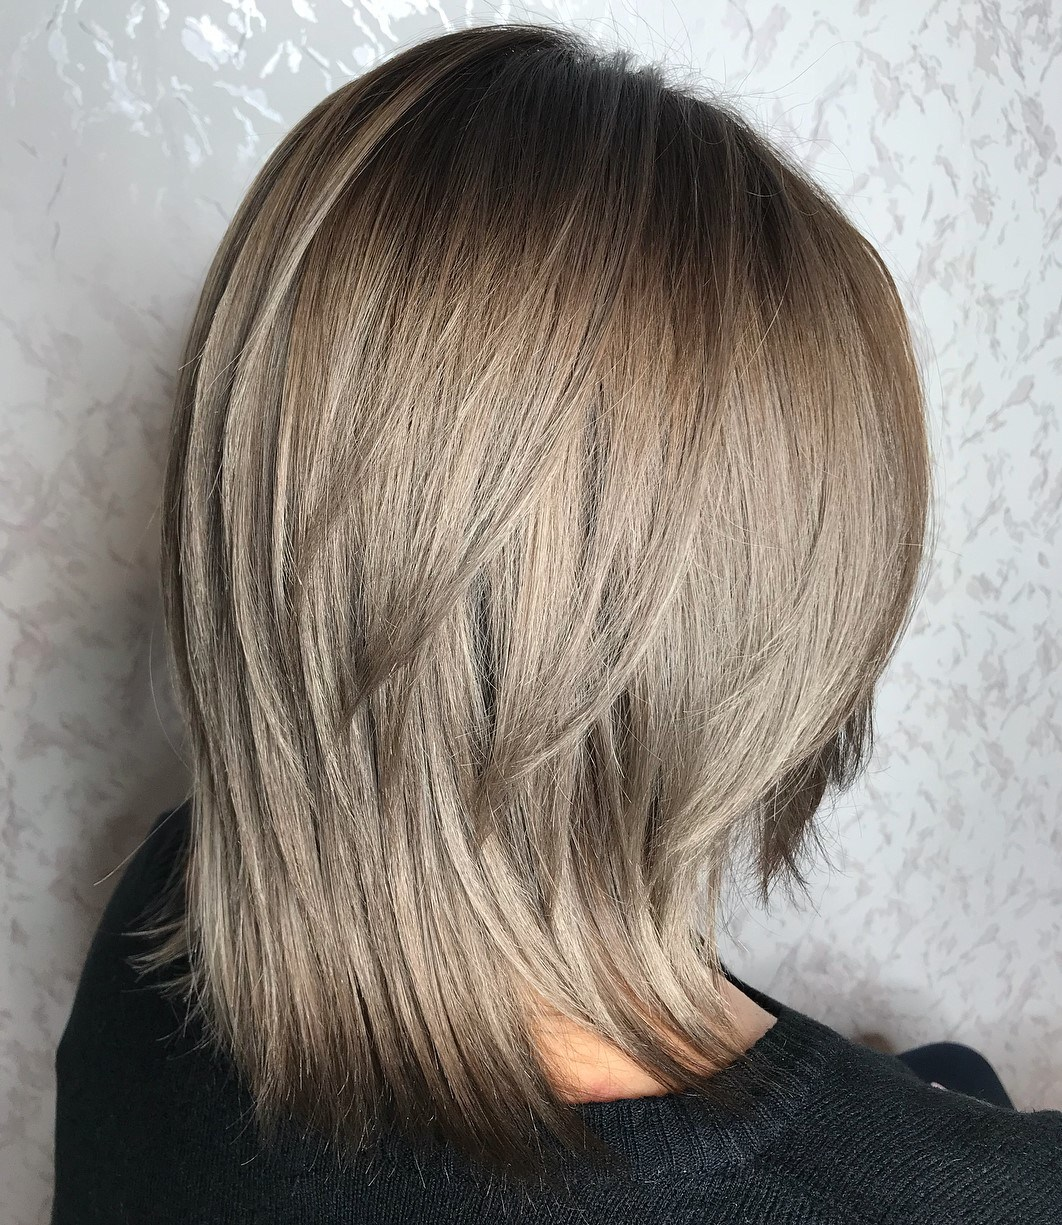 Two-Tier Cut for Straight Hair